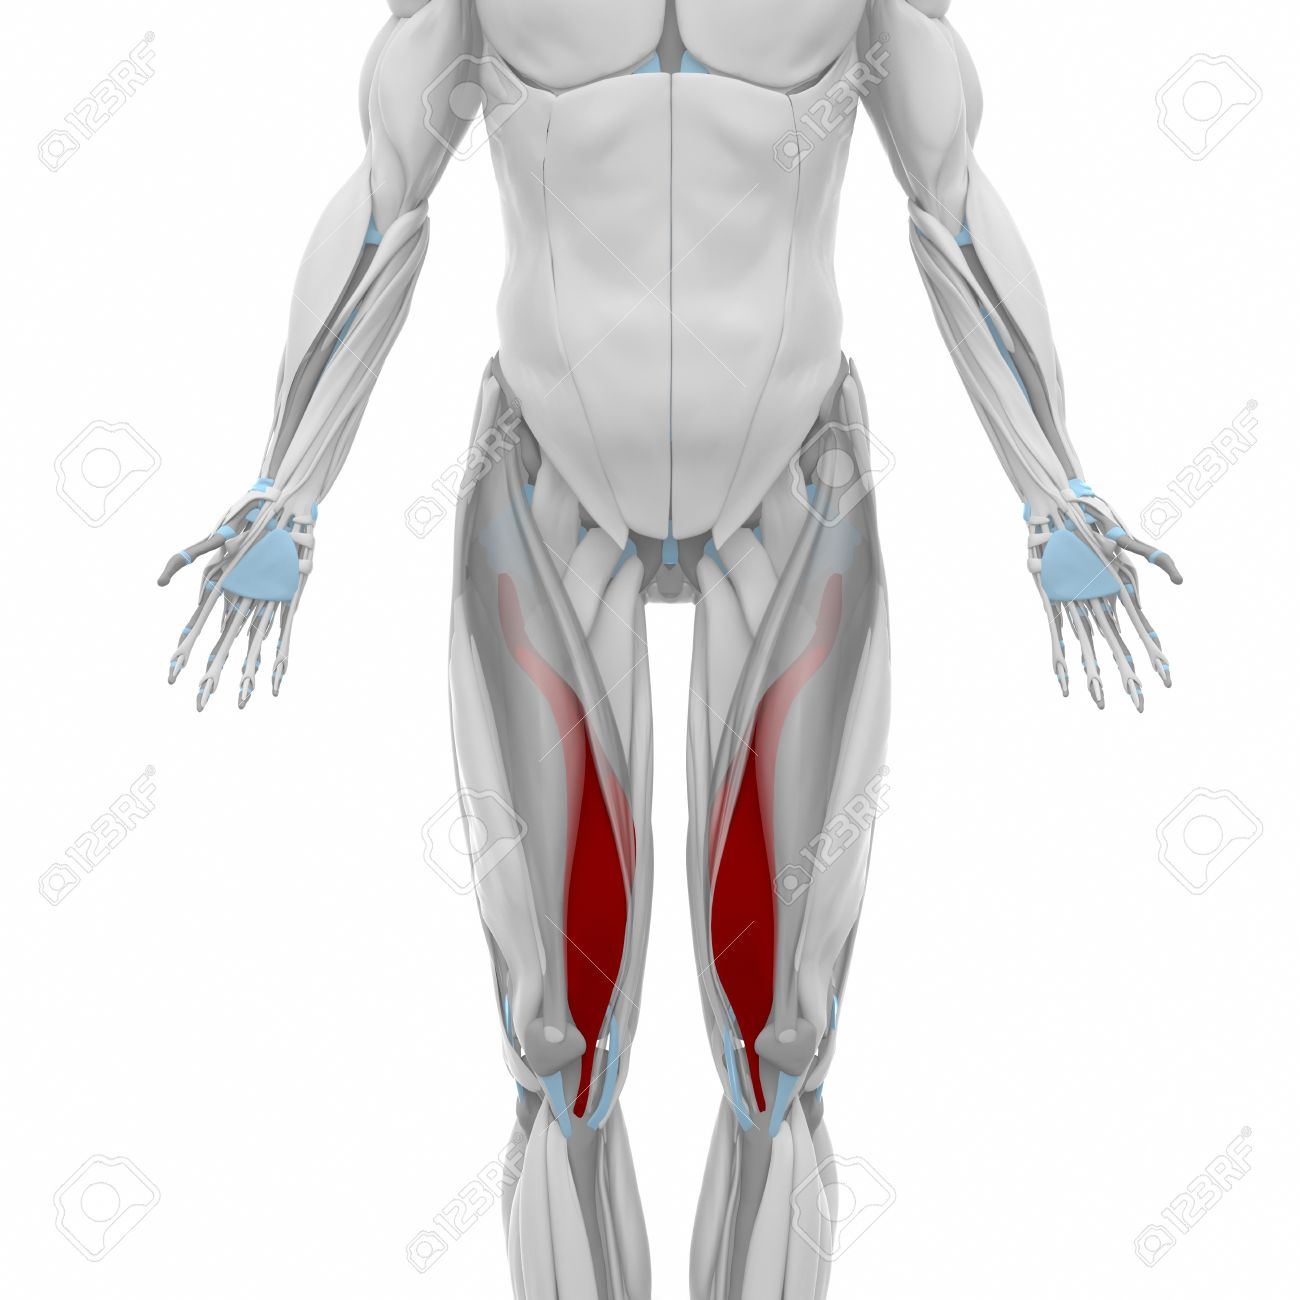 Vastus Medialis - Muscles Anatomy Map Stock Photo, Picture And ...